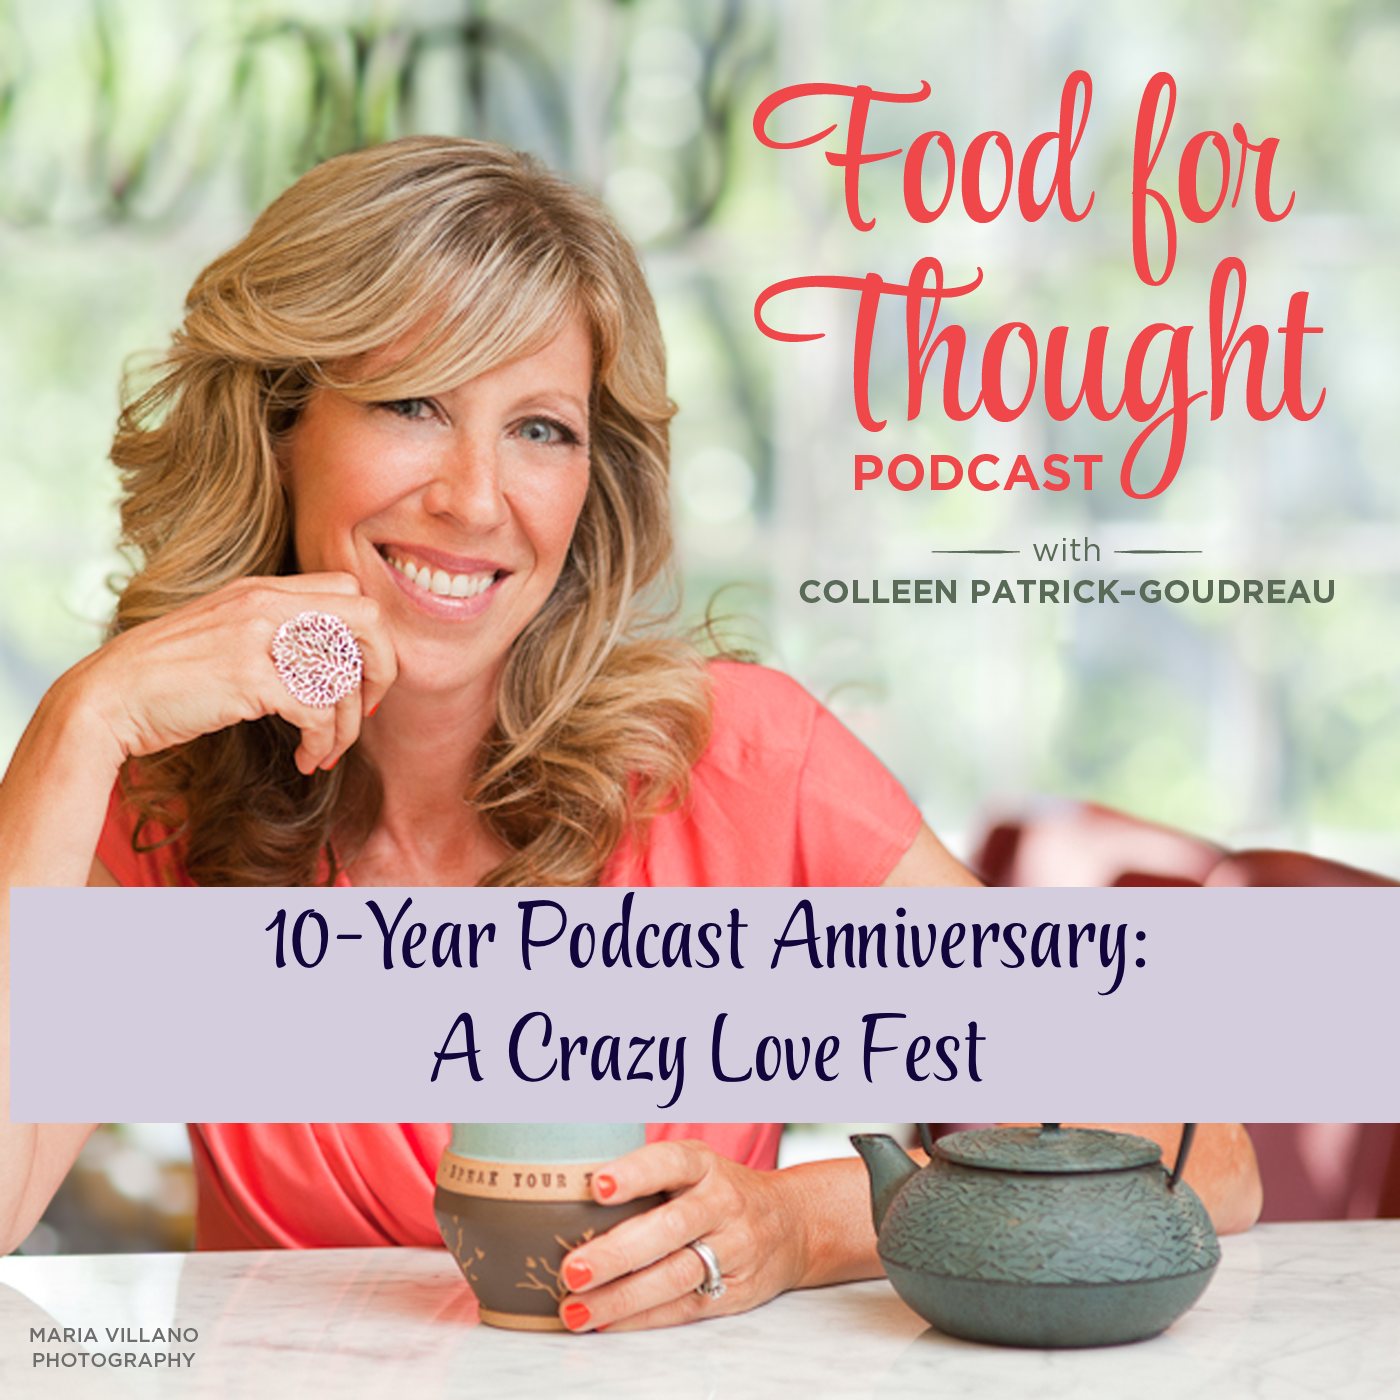 Ten-Year Podcast Anniversary: A Crazy Love Fest!